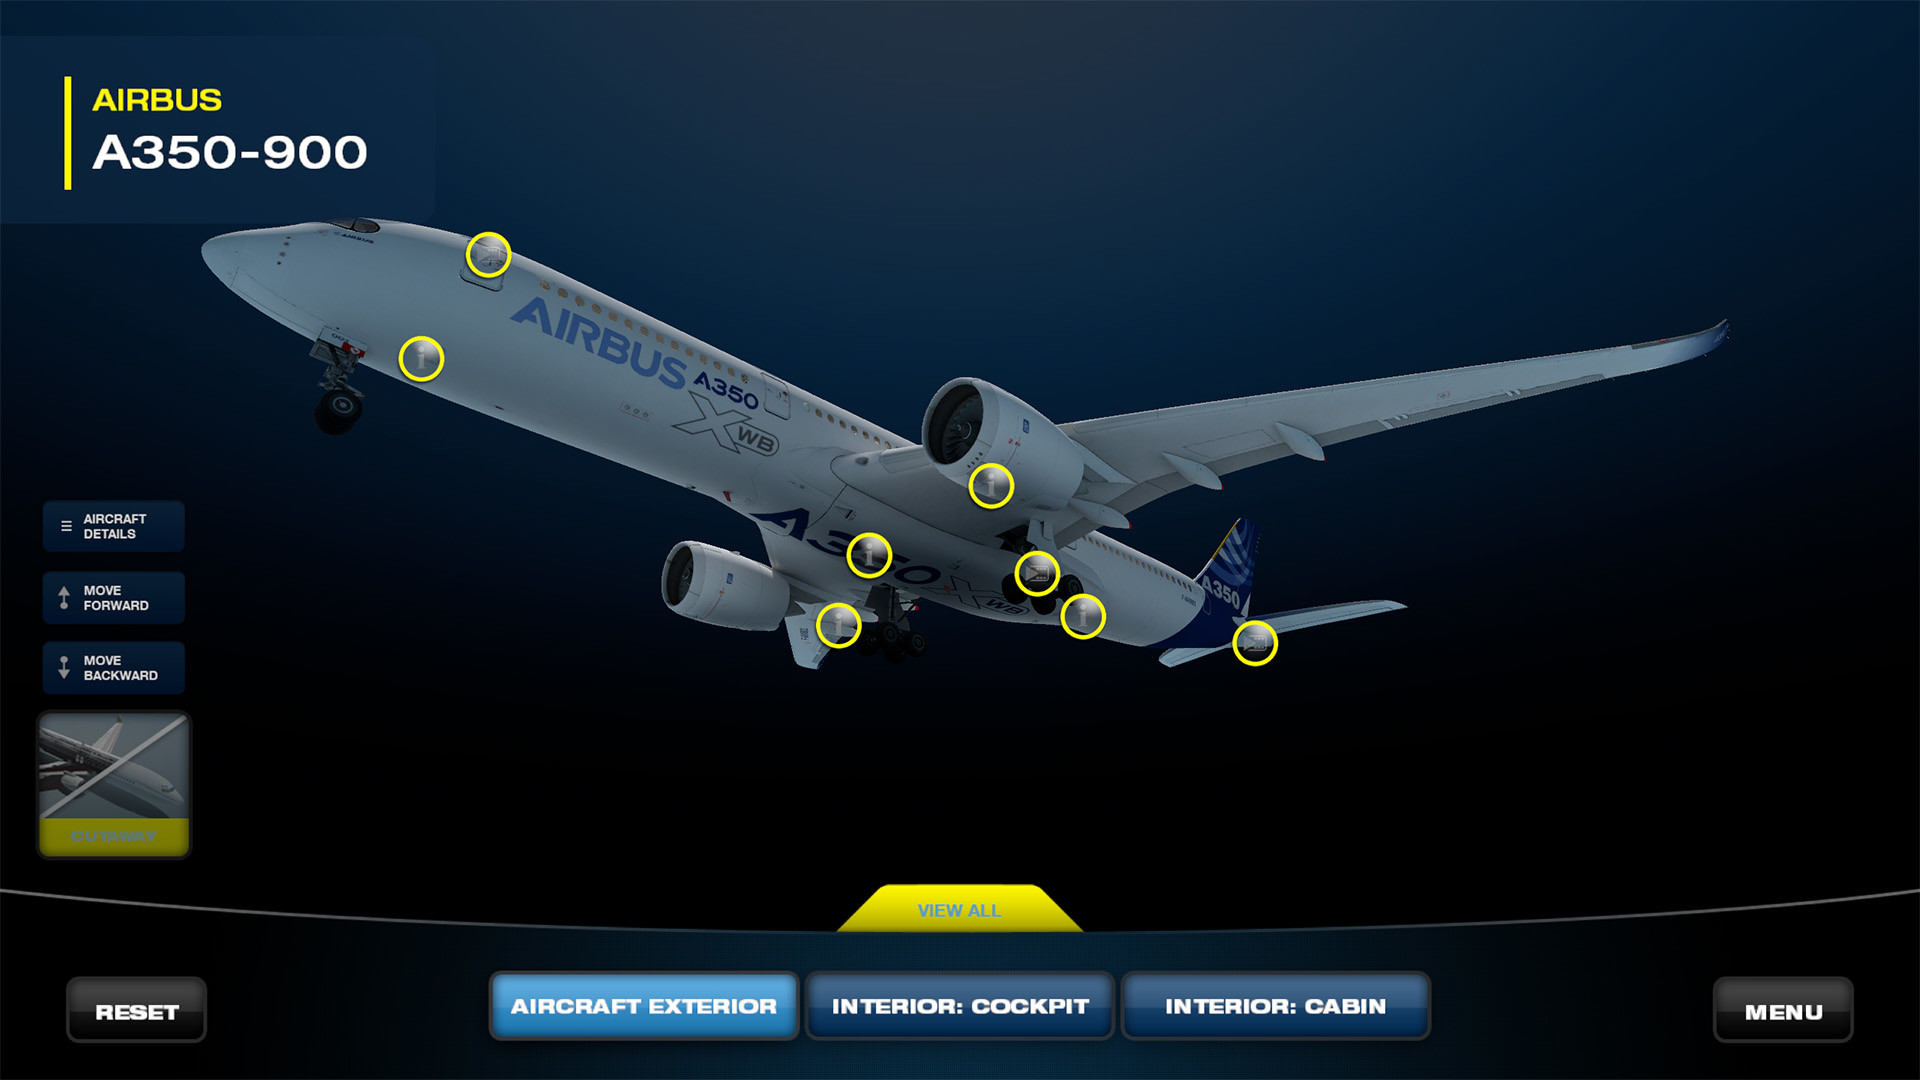 A350 model, has the landing gear detailed and animated.